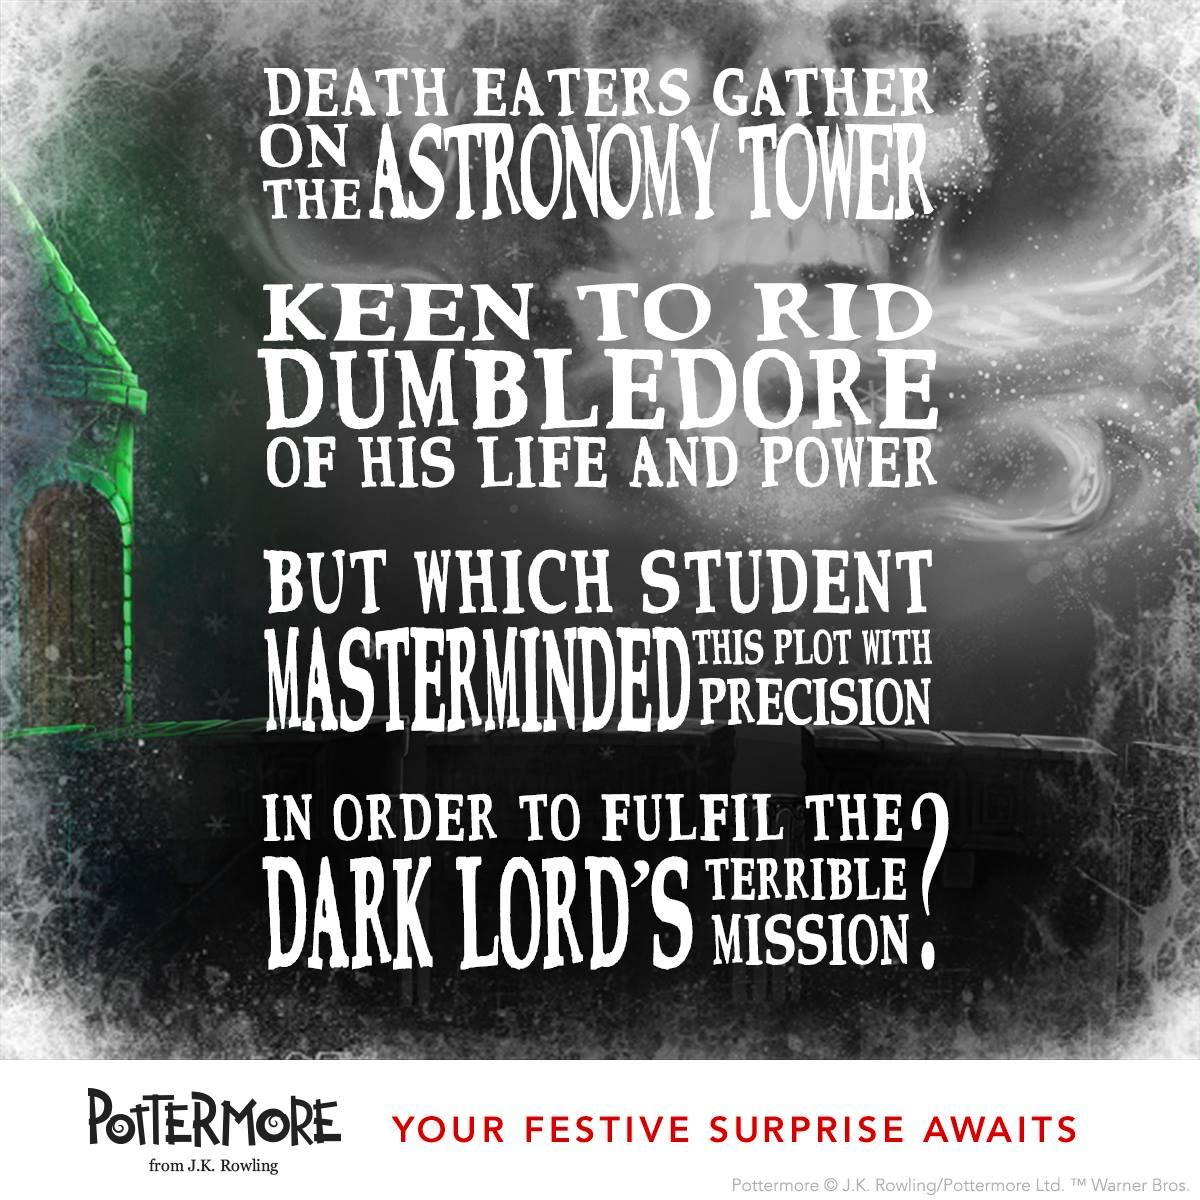 Day 11 of J.K. Rowling's Twelve Days of Christmas Harry Potter Moments